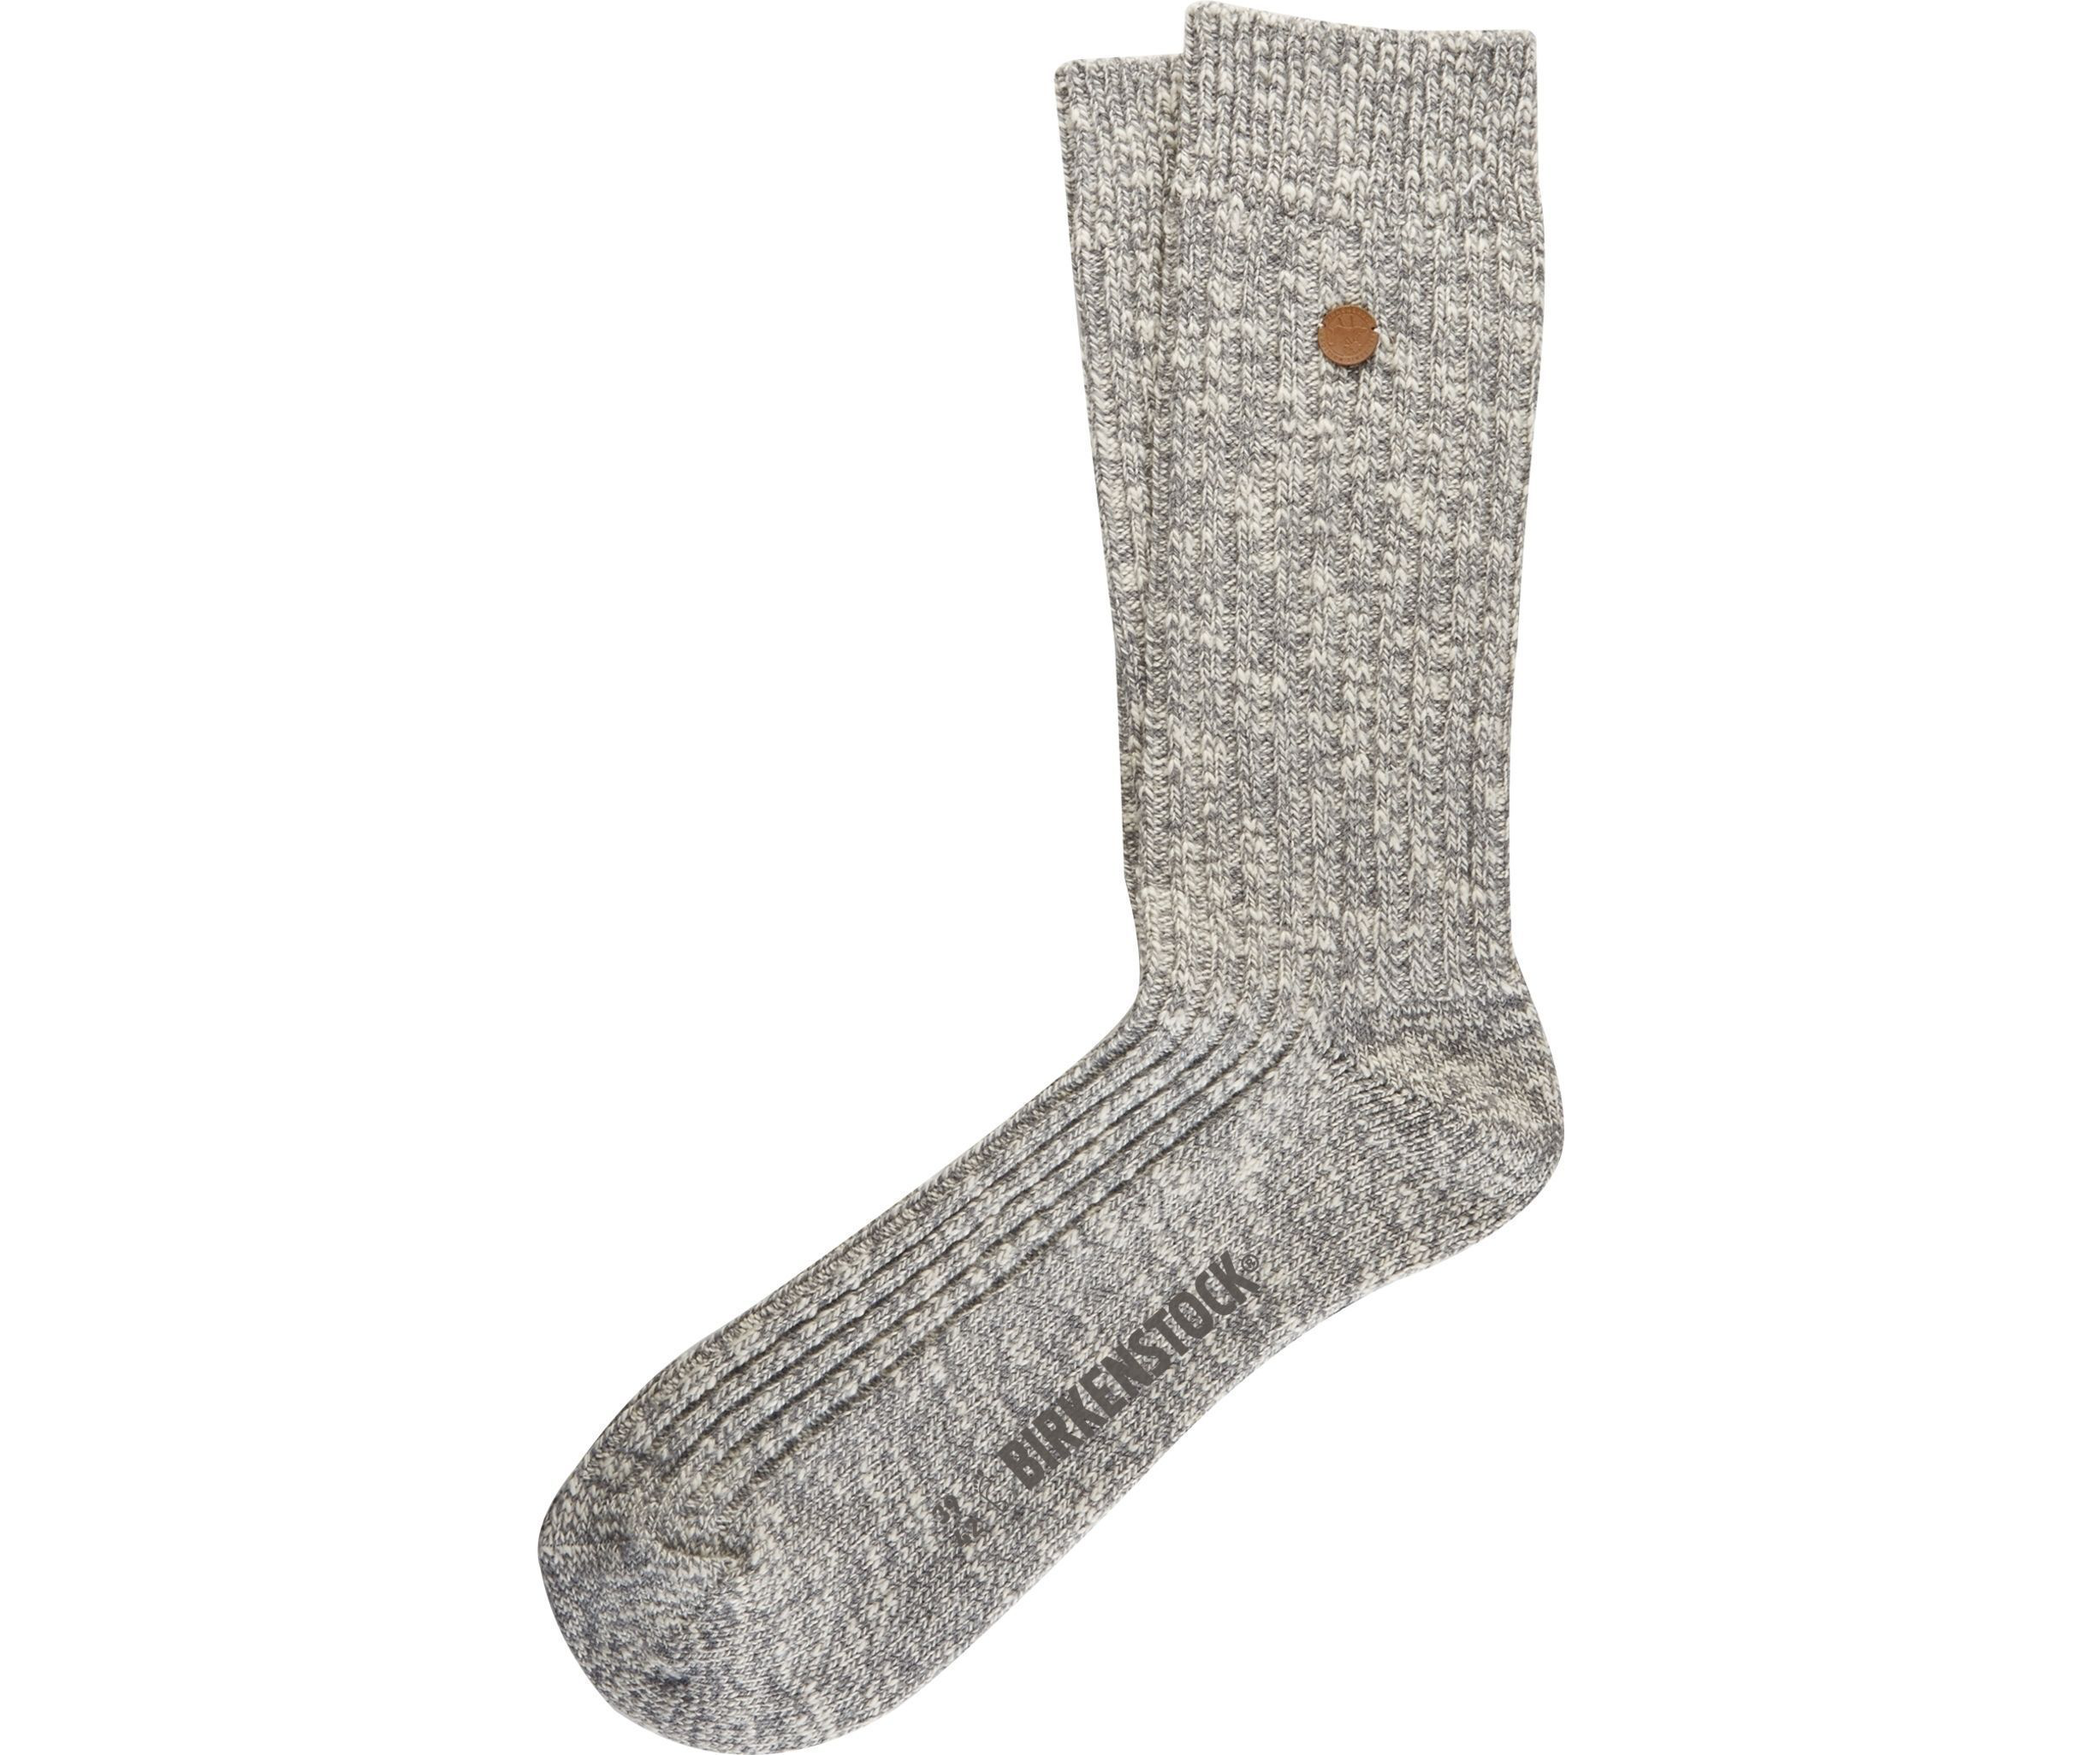 London Sock - White Cotton Lycra